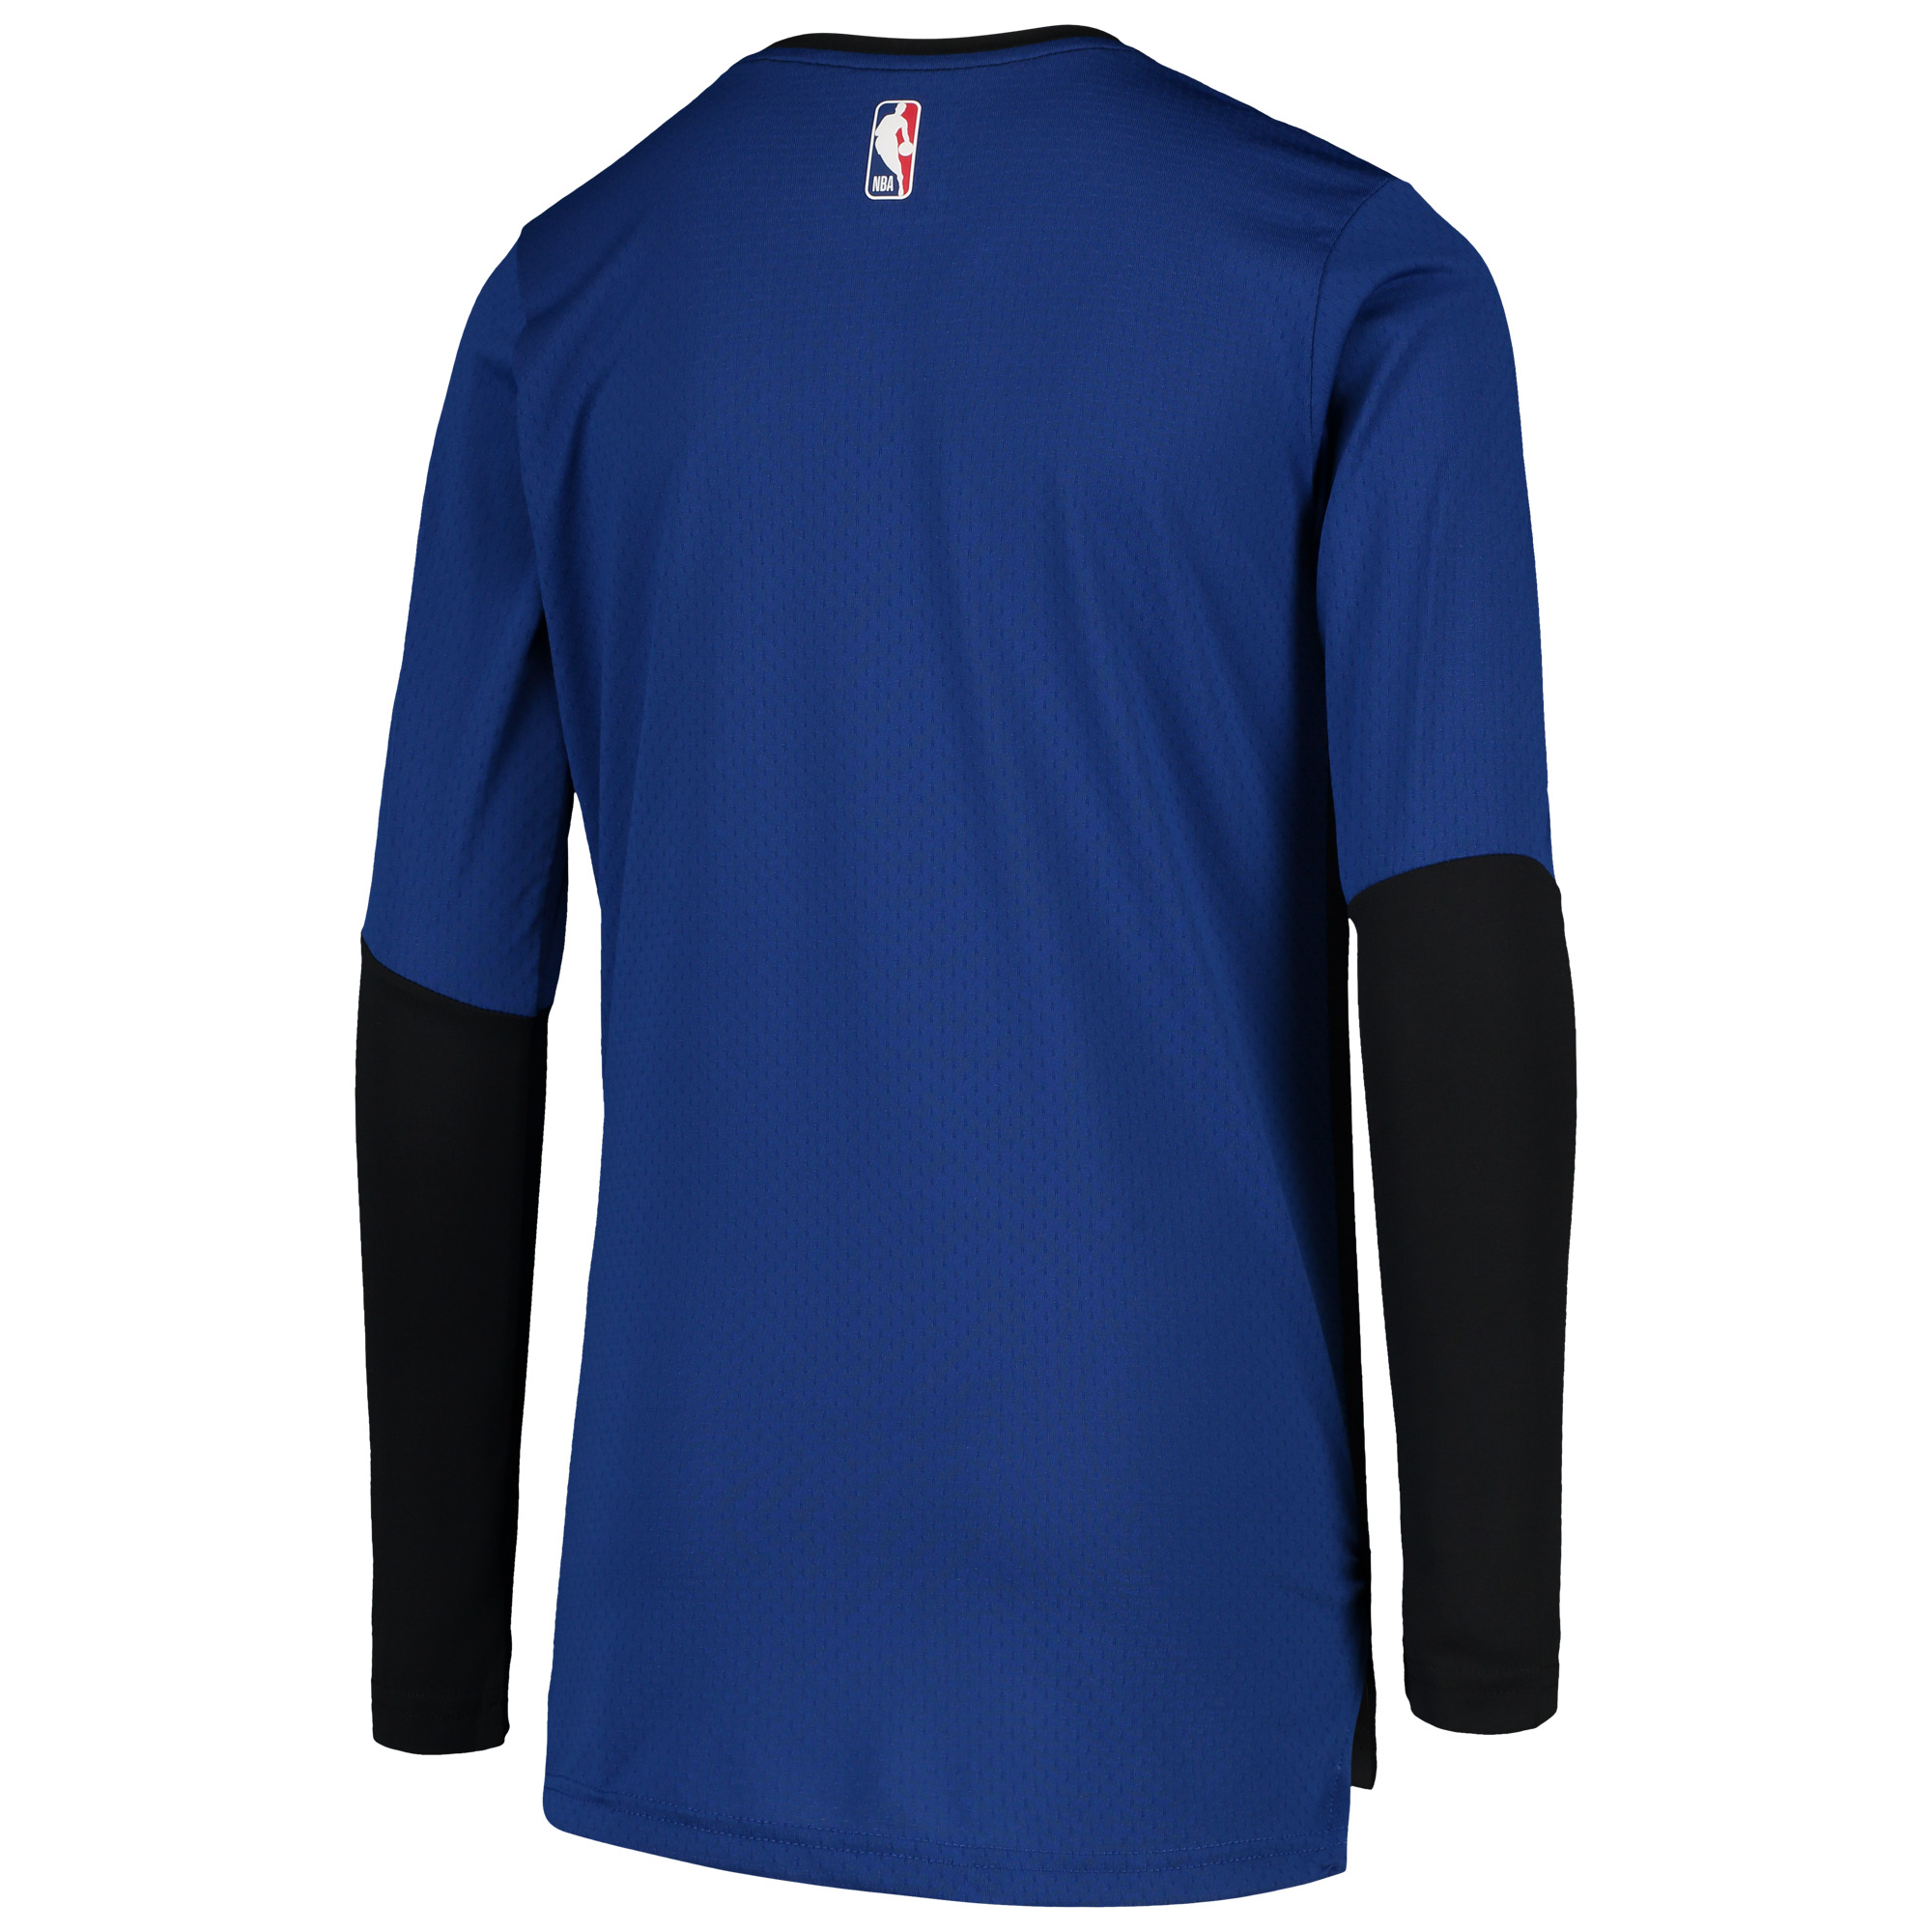 df83035d1 Golden State Warriors Nike Youth Dry Performance Long Sleeve Shooting T- Shirt - Royal - Walmart.com